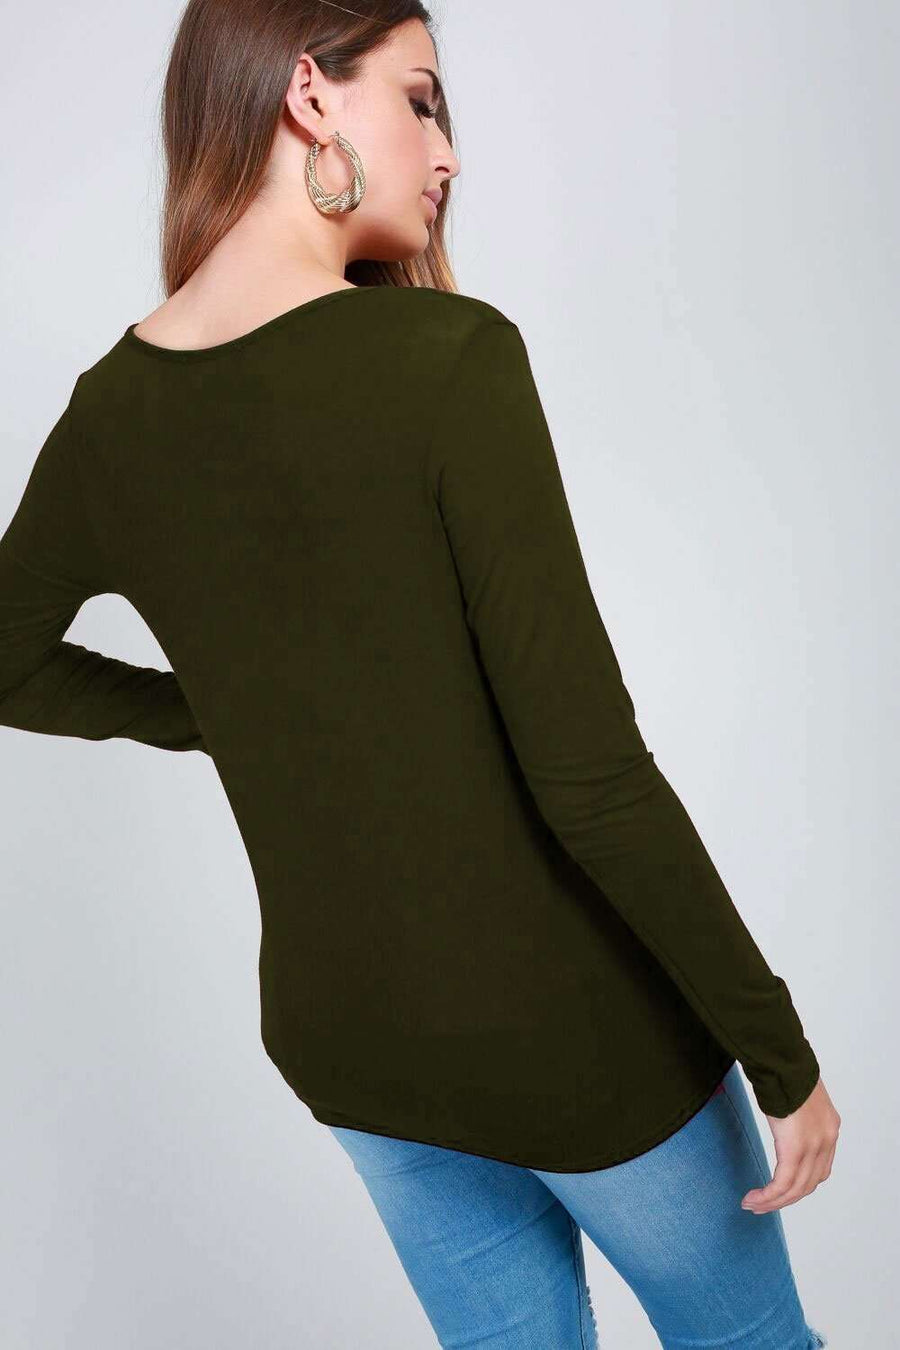 Darcy Long Sleeve Basic Jersey Top - bejealous-com